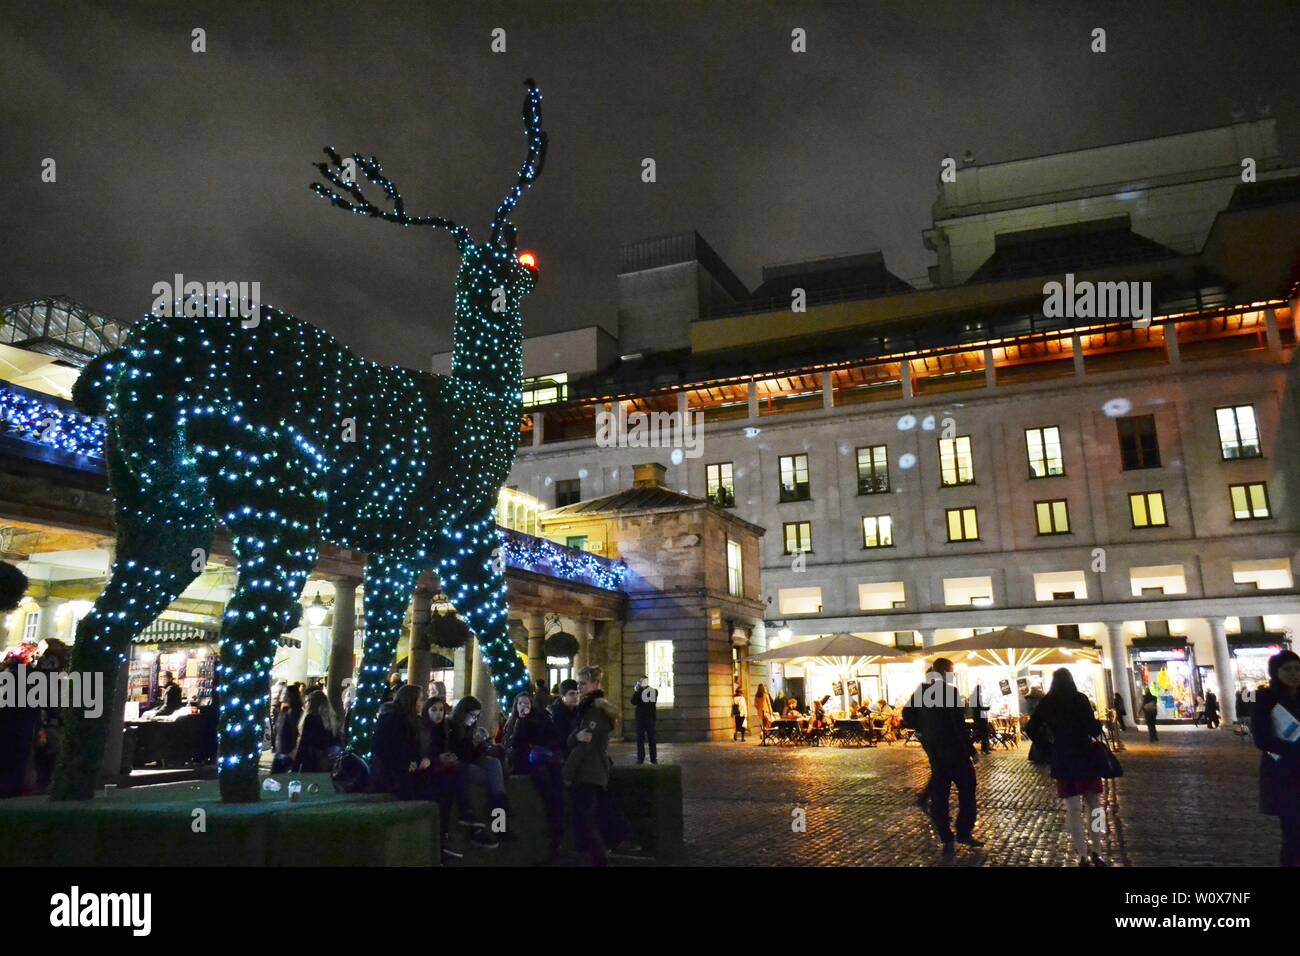 London/UK - November 27, 2013: Covent Garden square by night decorated for Christmas with giant topiary illuminated with LED lights reindeer by night. Stock Photo